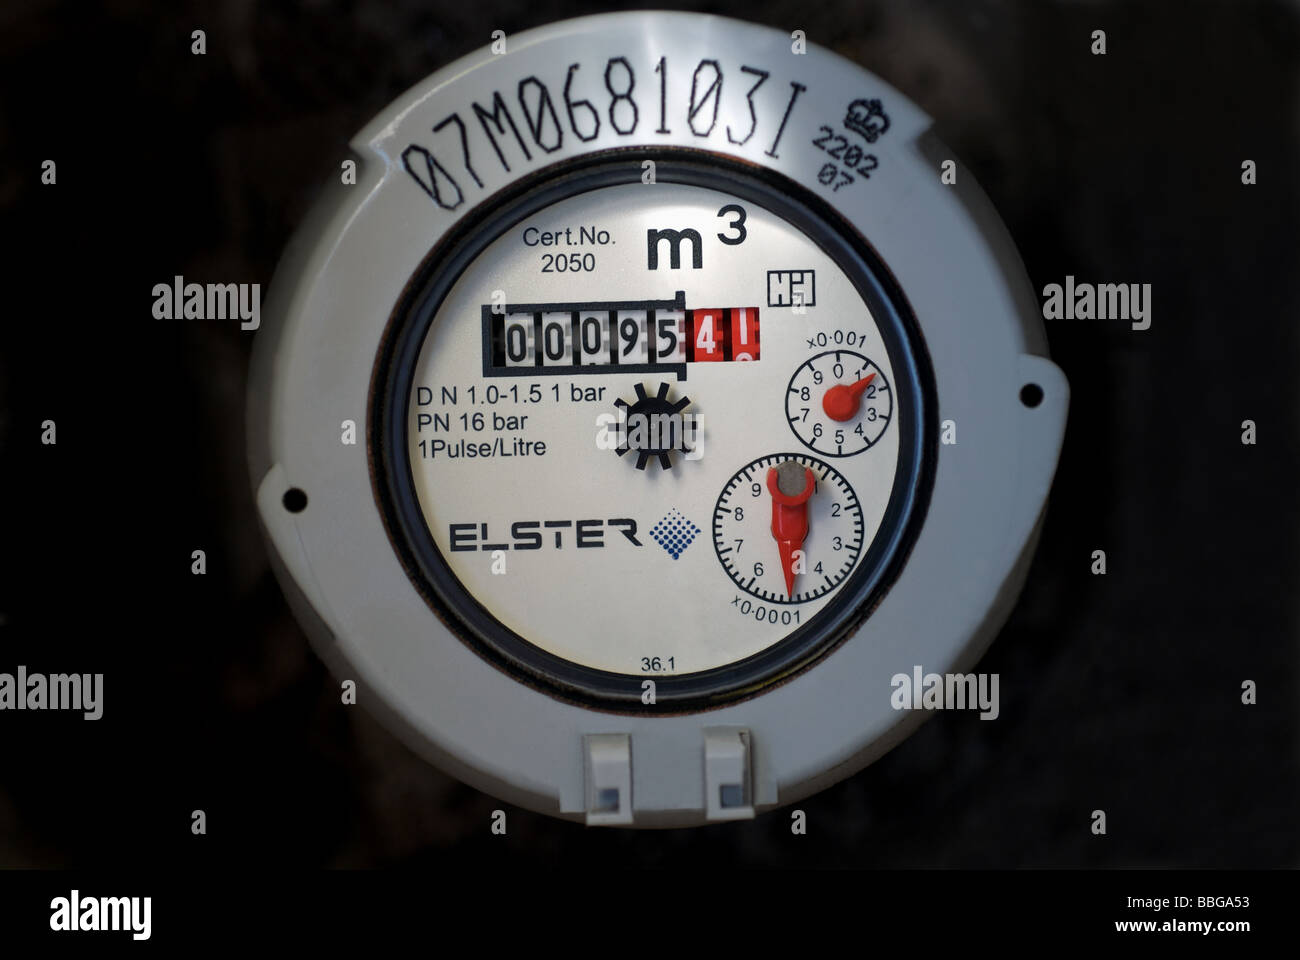 Domestic water meter, on a property in the Anglian Water region of the UK. - Stock Image